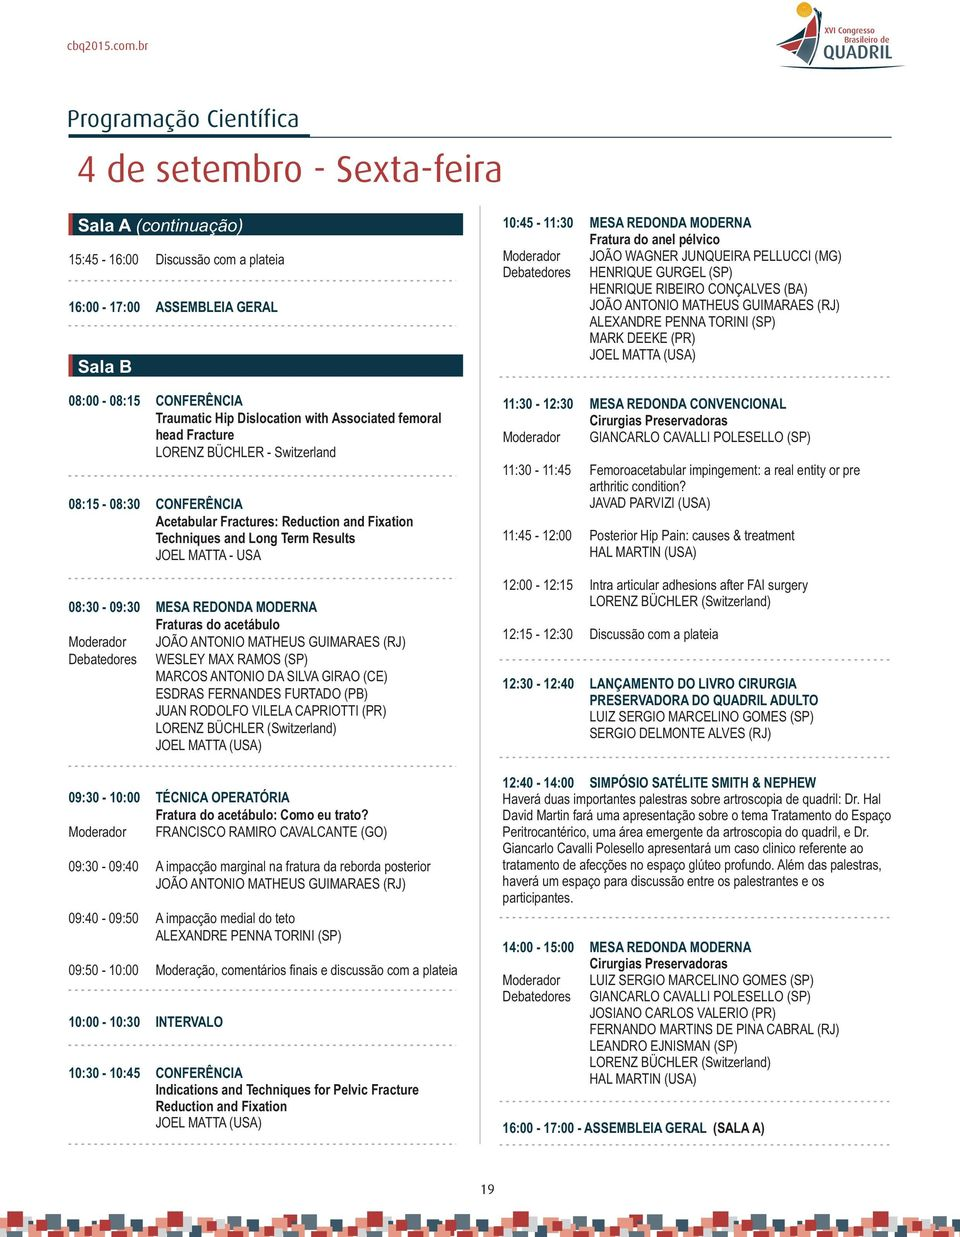 Associated femoral head Fracture LORENZ BÜCHLER - Switzerland 08:15-08:30 CONFERÊNCIA Acetabular Fractures: Reduction and Fixation Techniques and Long Term Results JOEL MATTA - USA 08:30-09:30 MESA